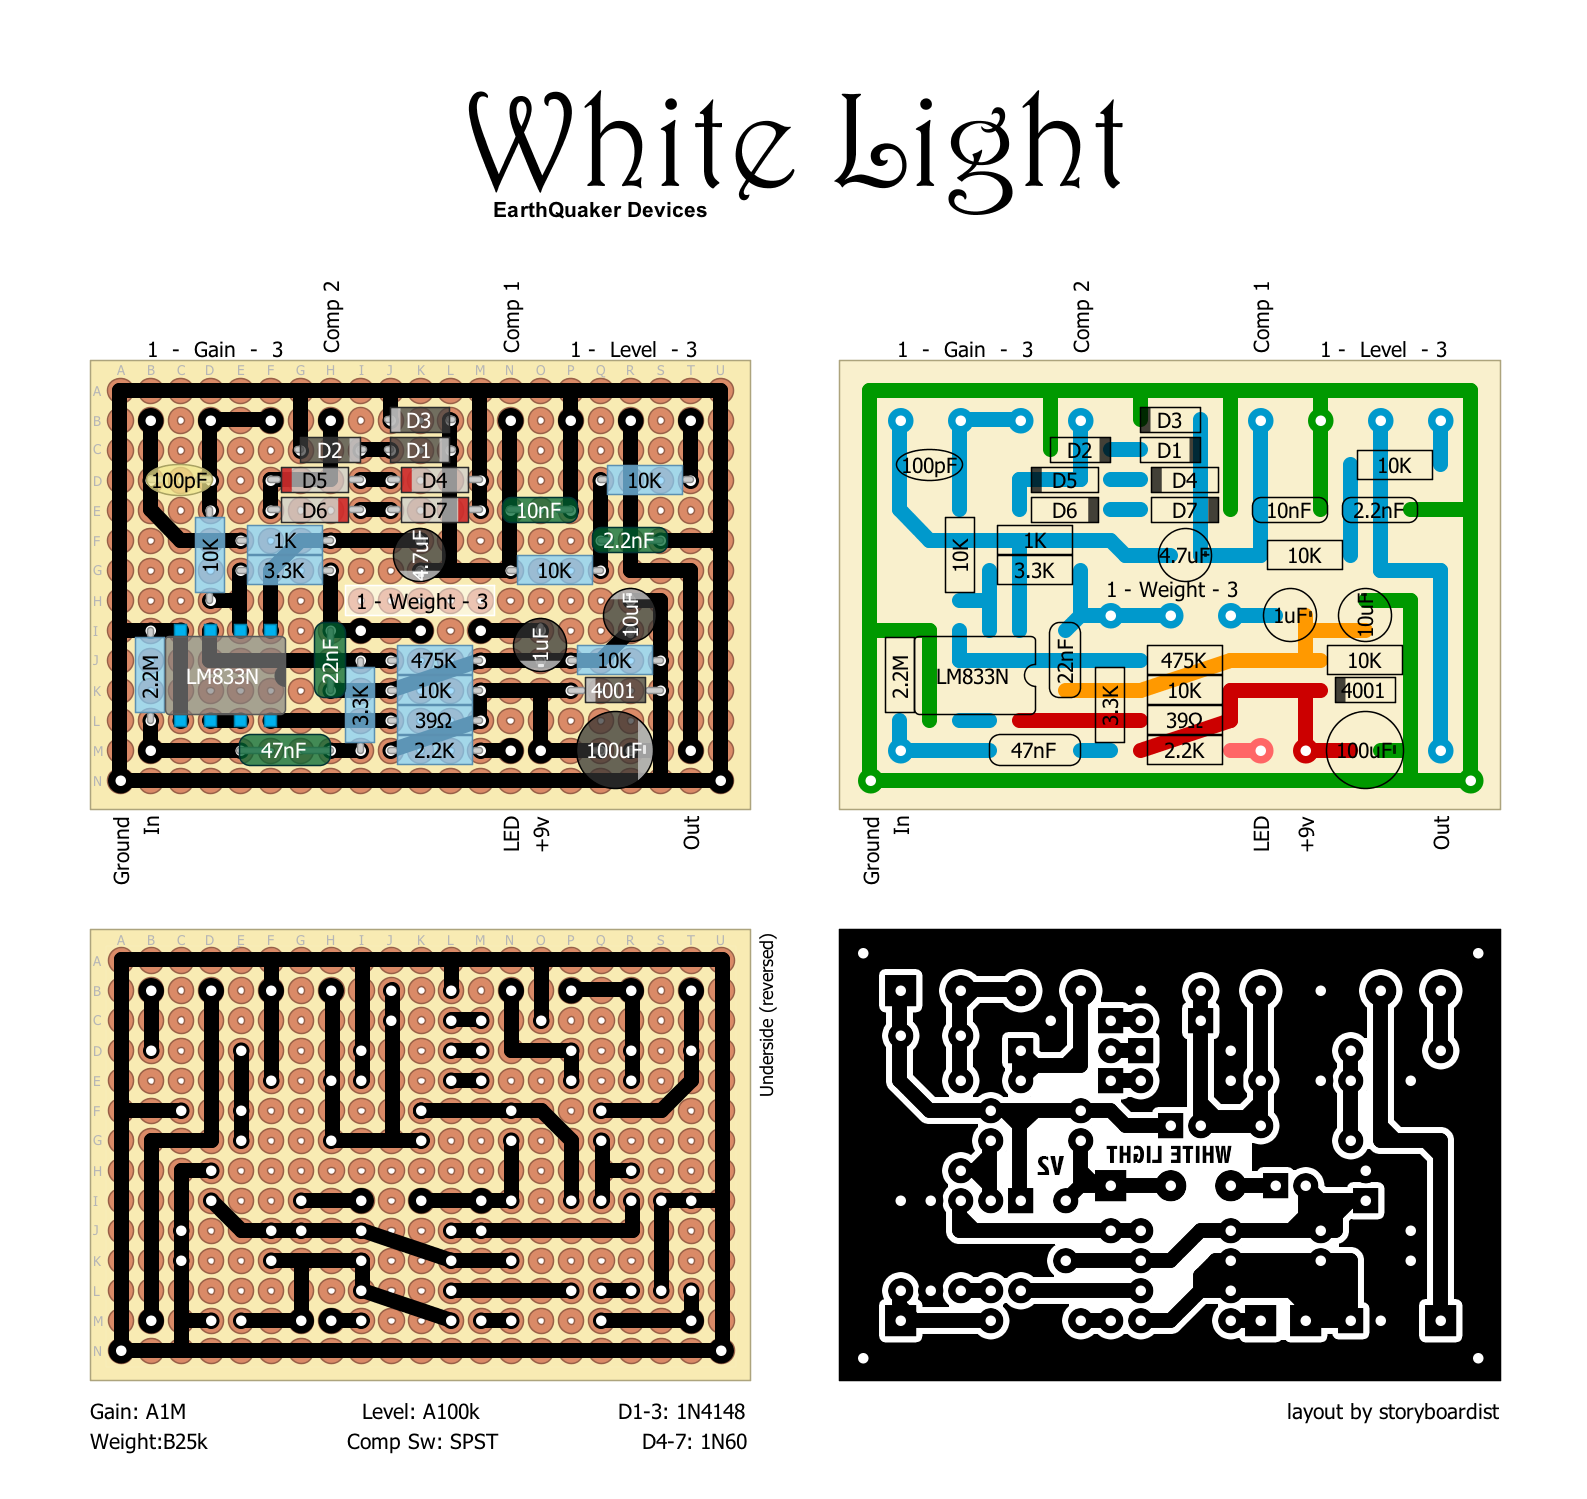 The White Light Is Based On The Mxr Distortion Dod 250 Circuit But With Some Modernization And Improveme Earthquaker Devices Diy Guitar Pedal Diy Guitar Amp